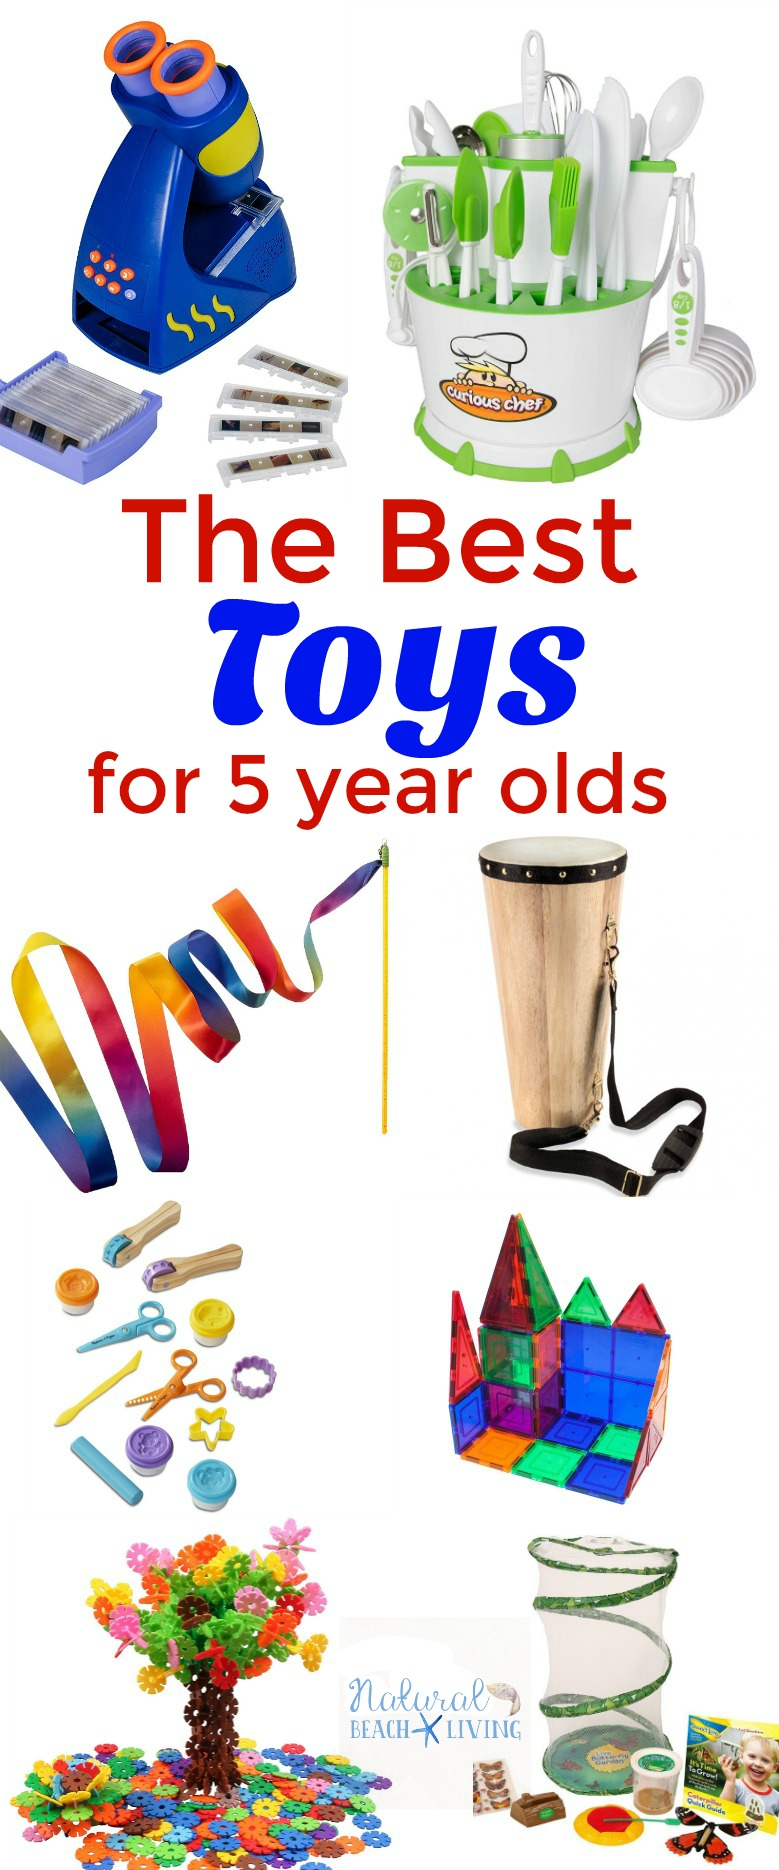 Toys For 5 Year Olds : The best montessori toys for year olds natural beach